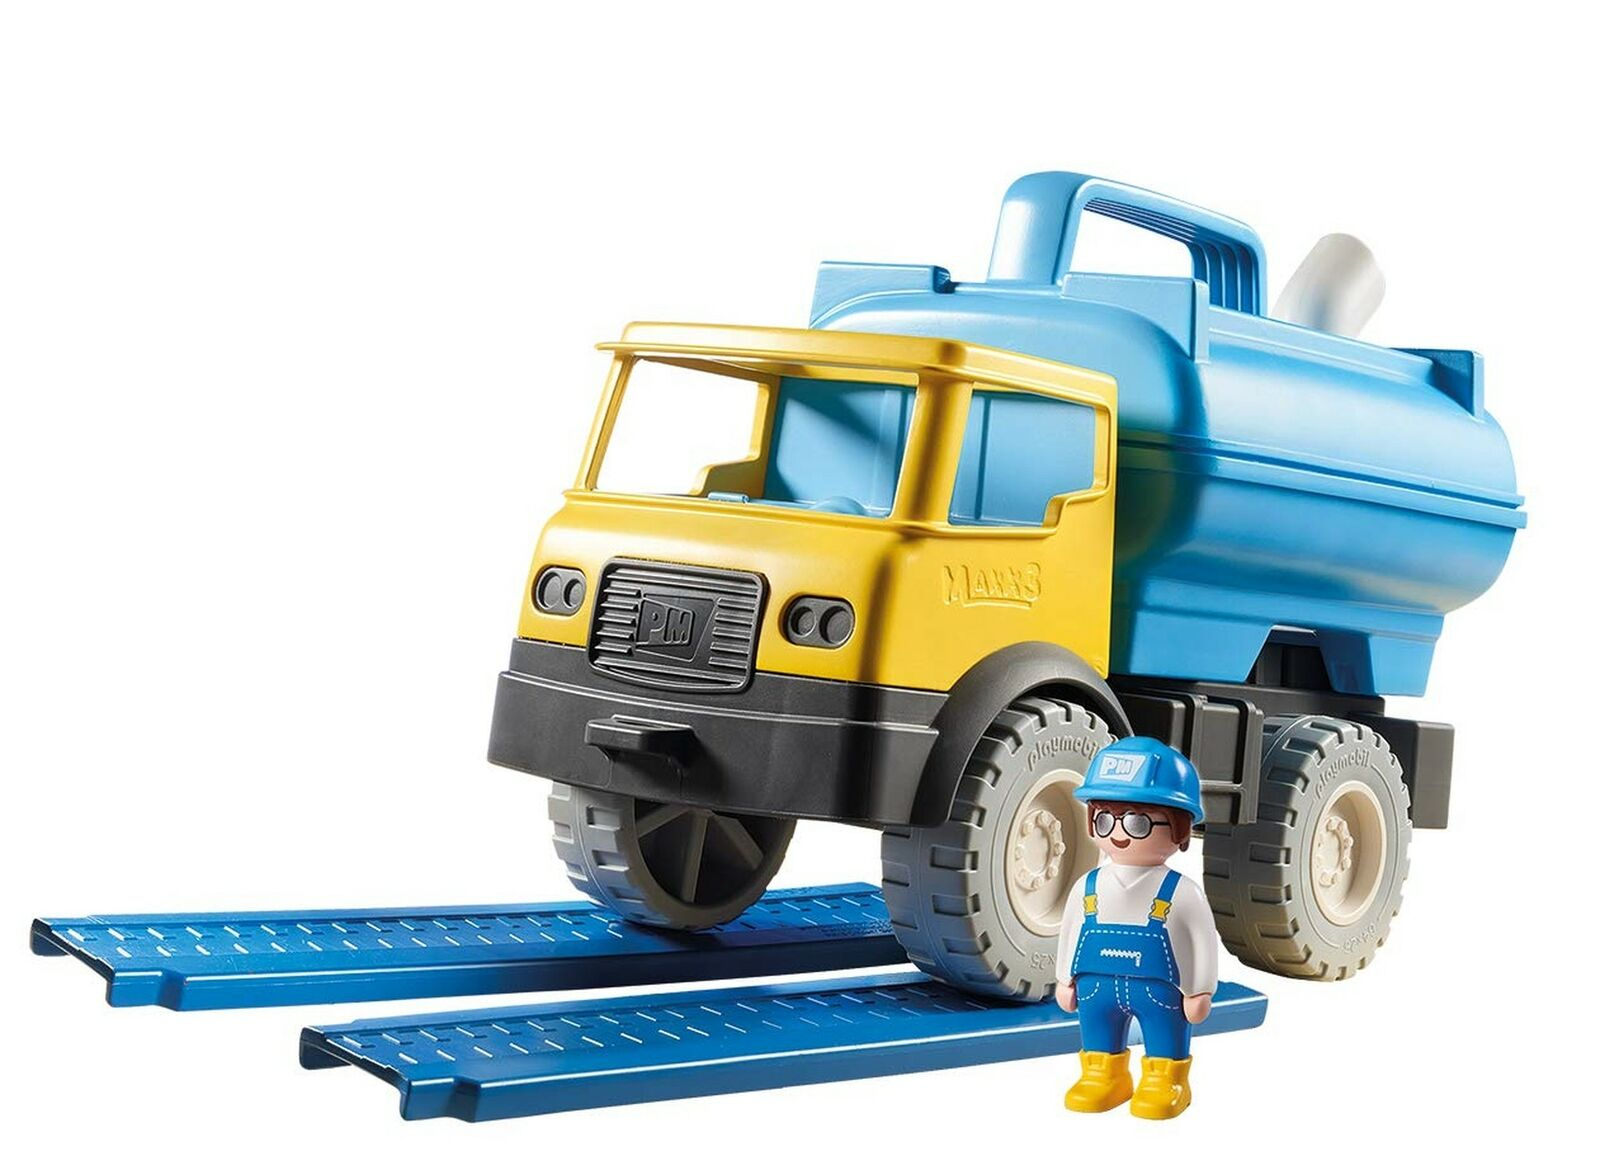 Playmobil Playmobil Playmobil 9144 Sand Water Tank Truck with Removable Tank b47aef